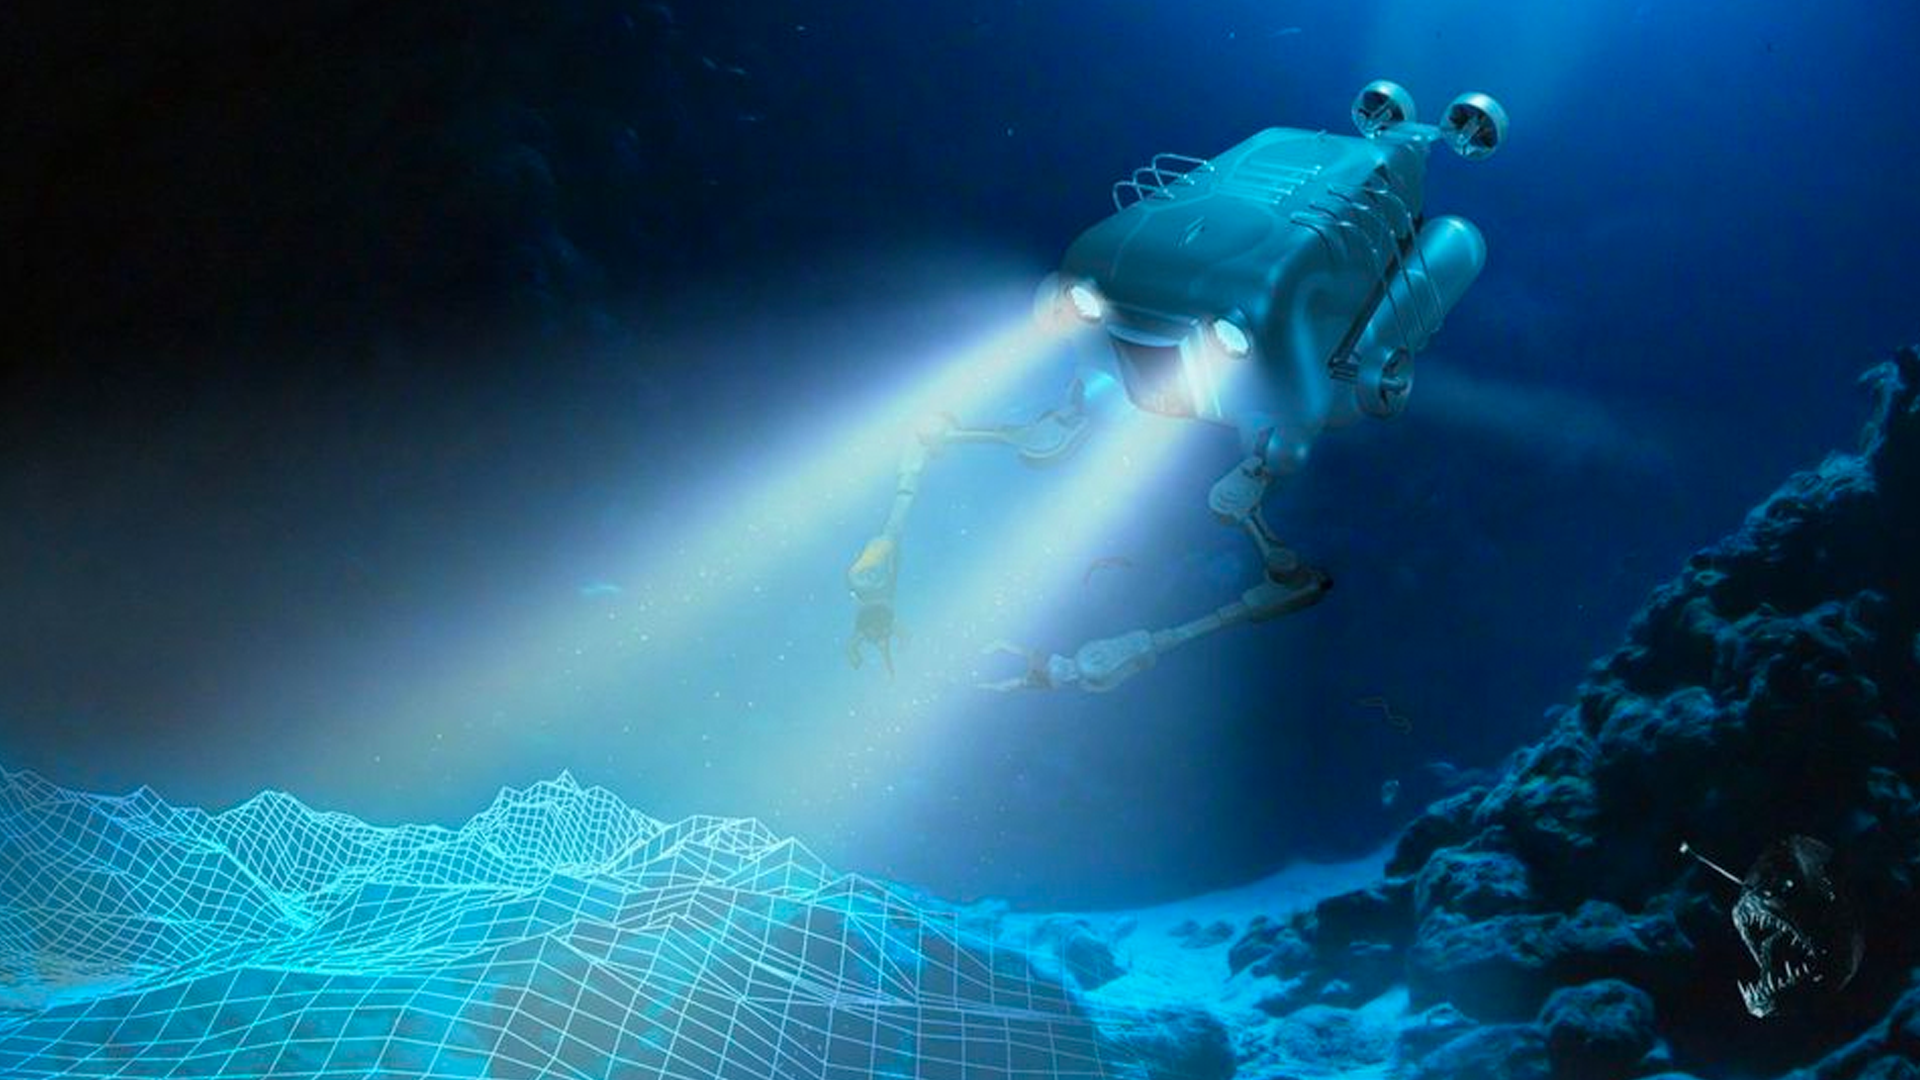 Artist rendering of an underwater AV with robotic arms, courtesy DARPA